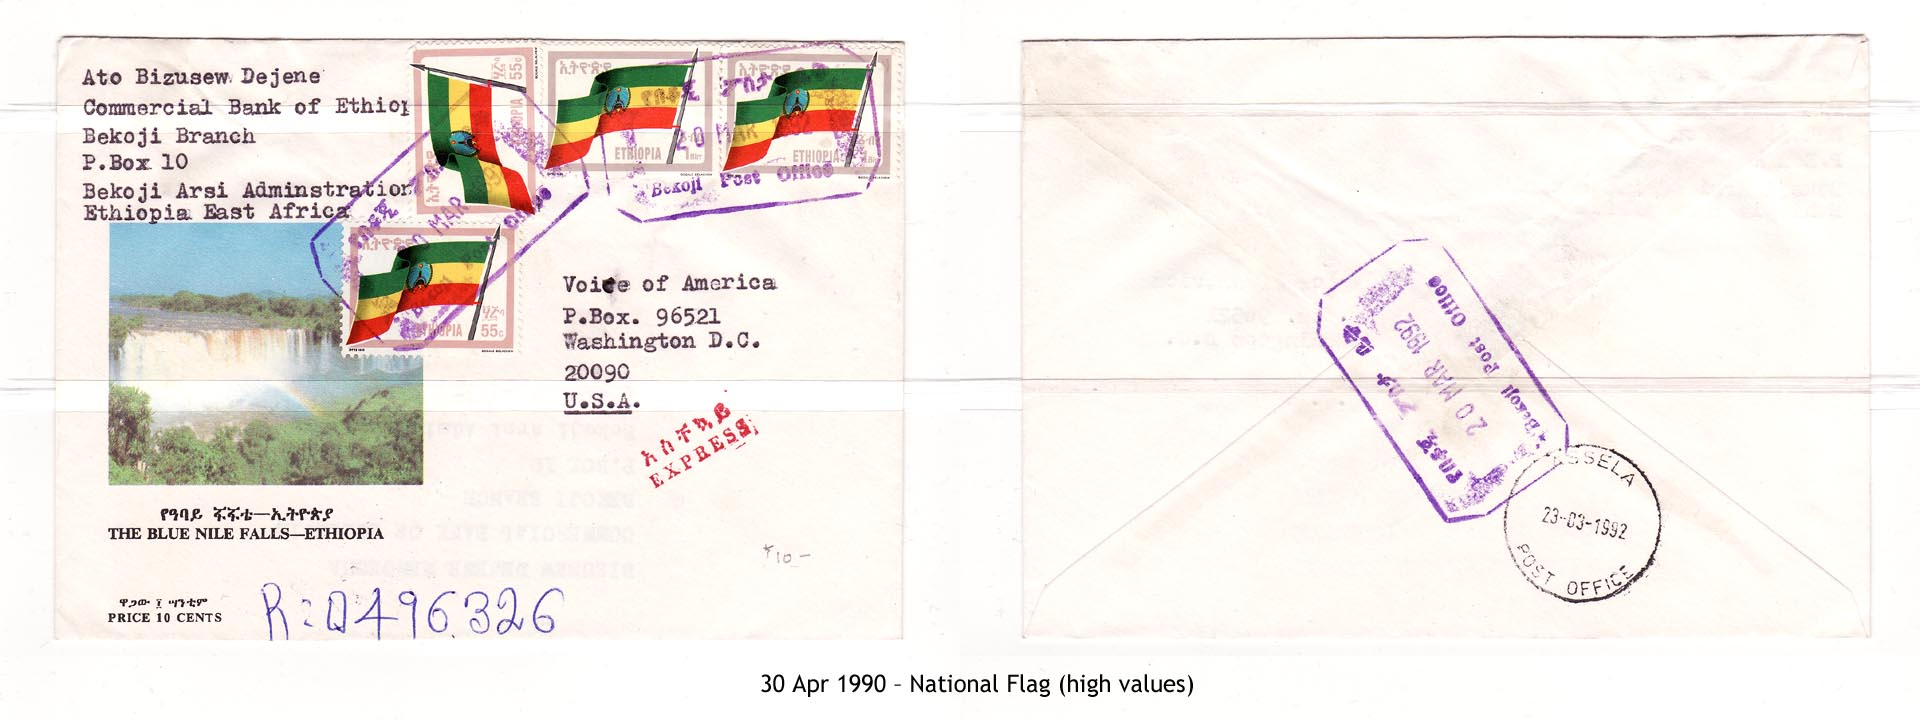 19900430 – National Flag (high values)